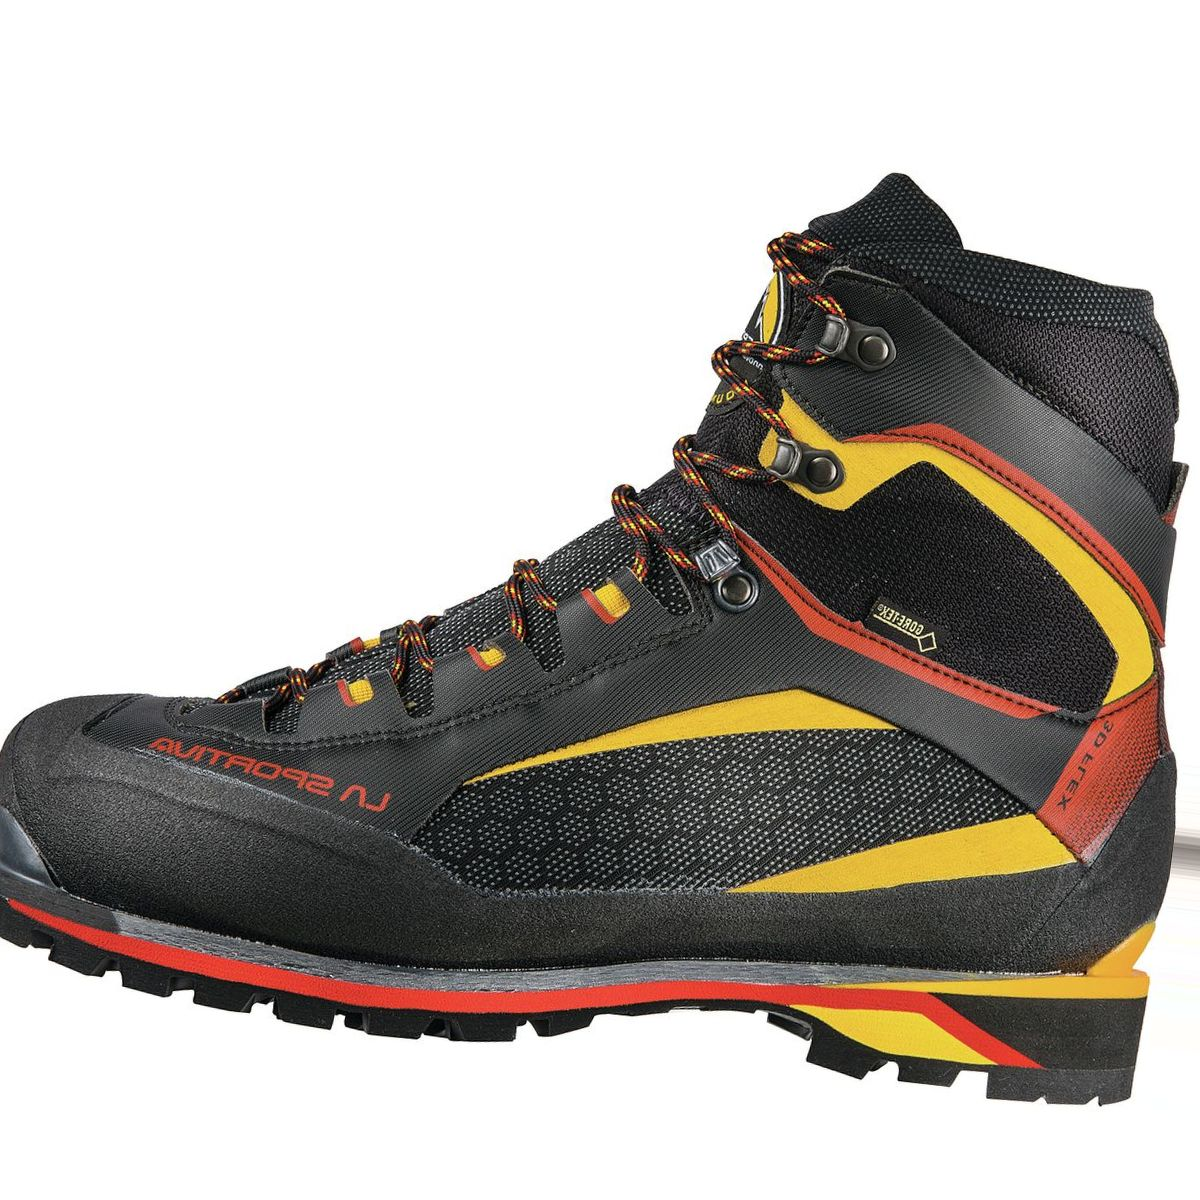 La Sportiva Trango Tower Extreme GTX Mountaineering Boot - Men's